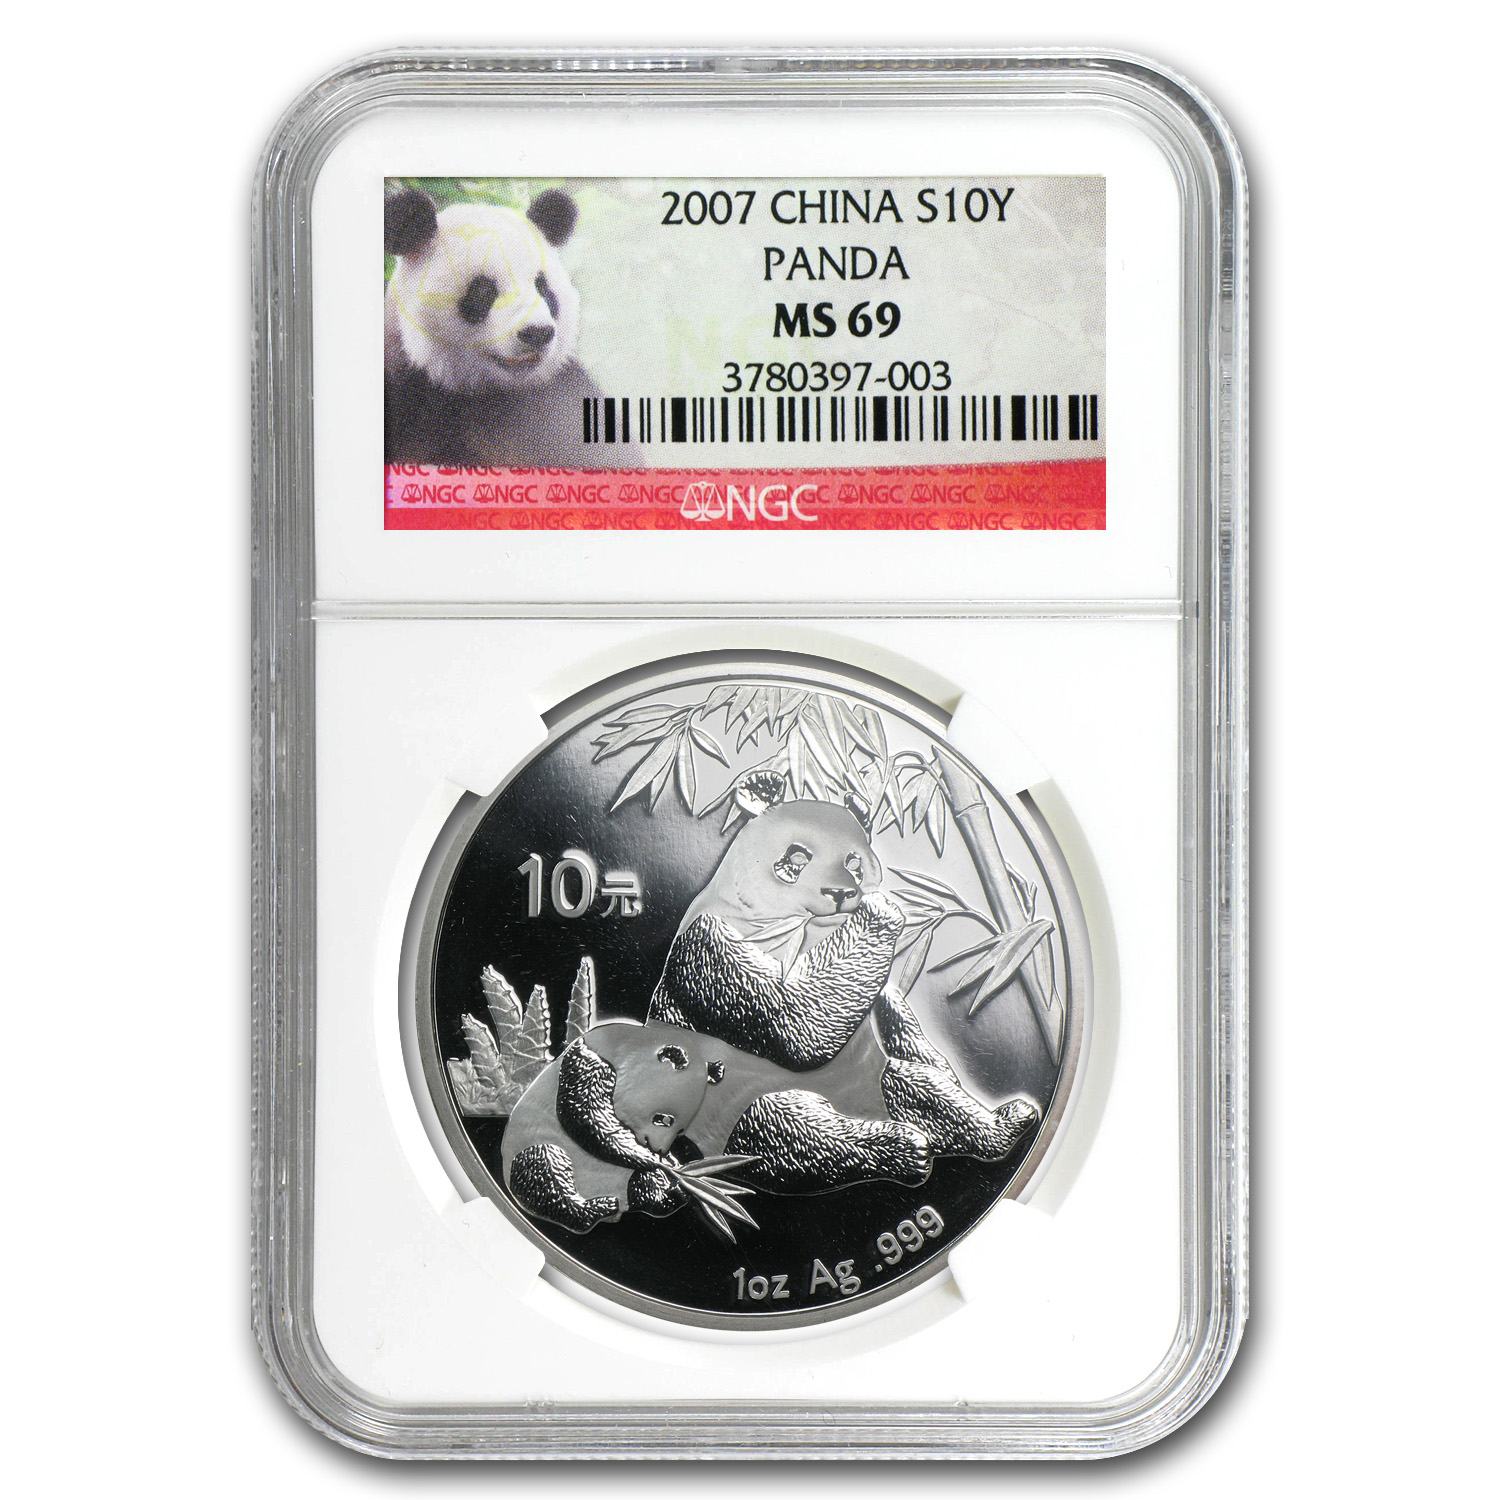 2007 China 1 oz Silver Panda MS-69 NGC